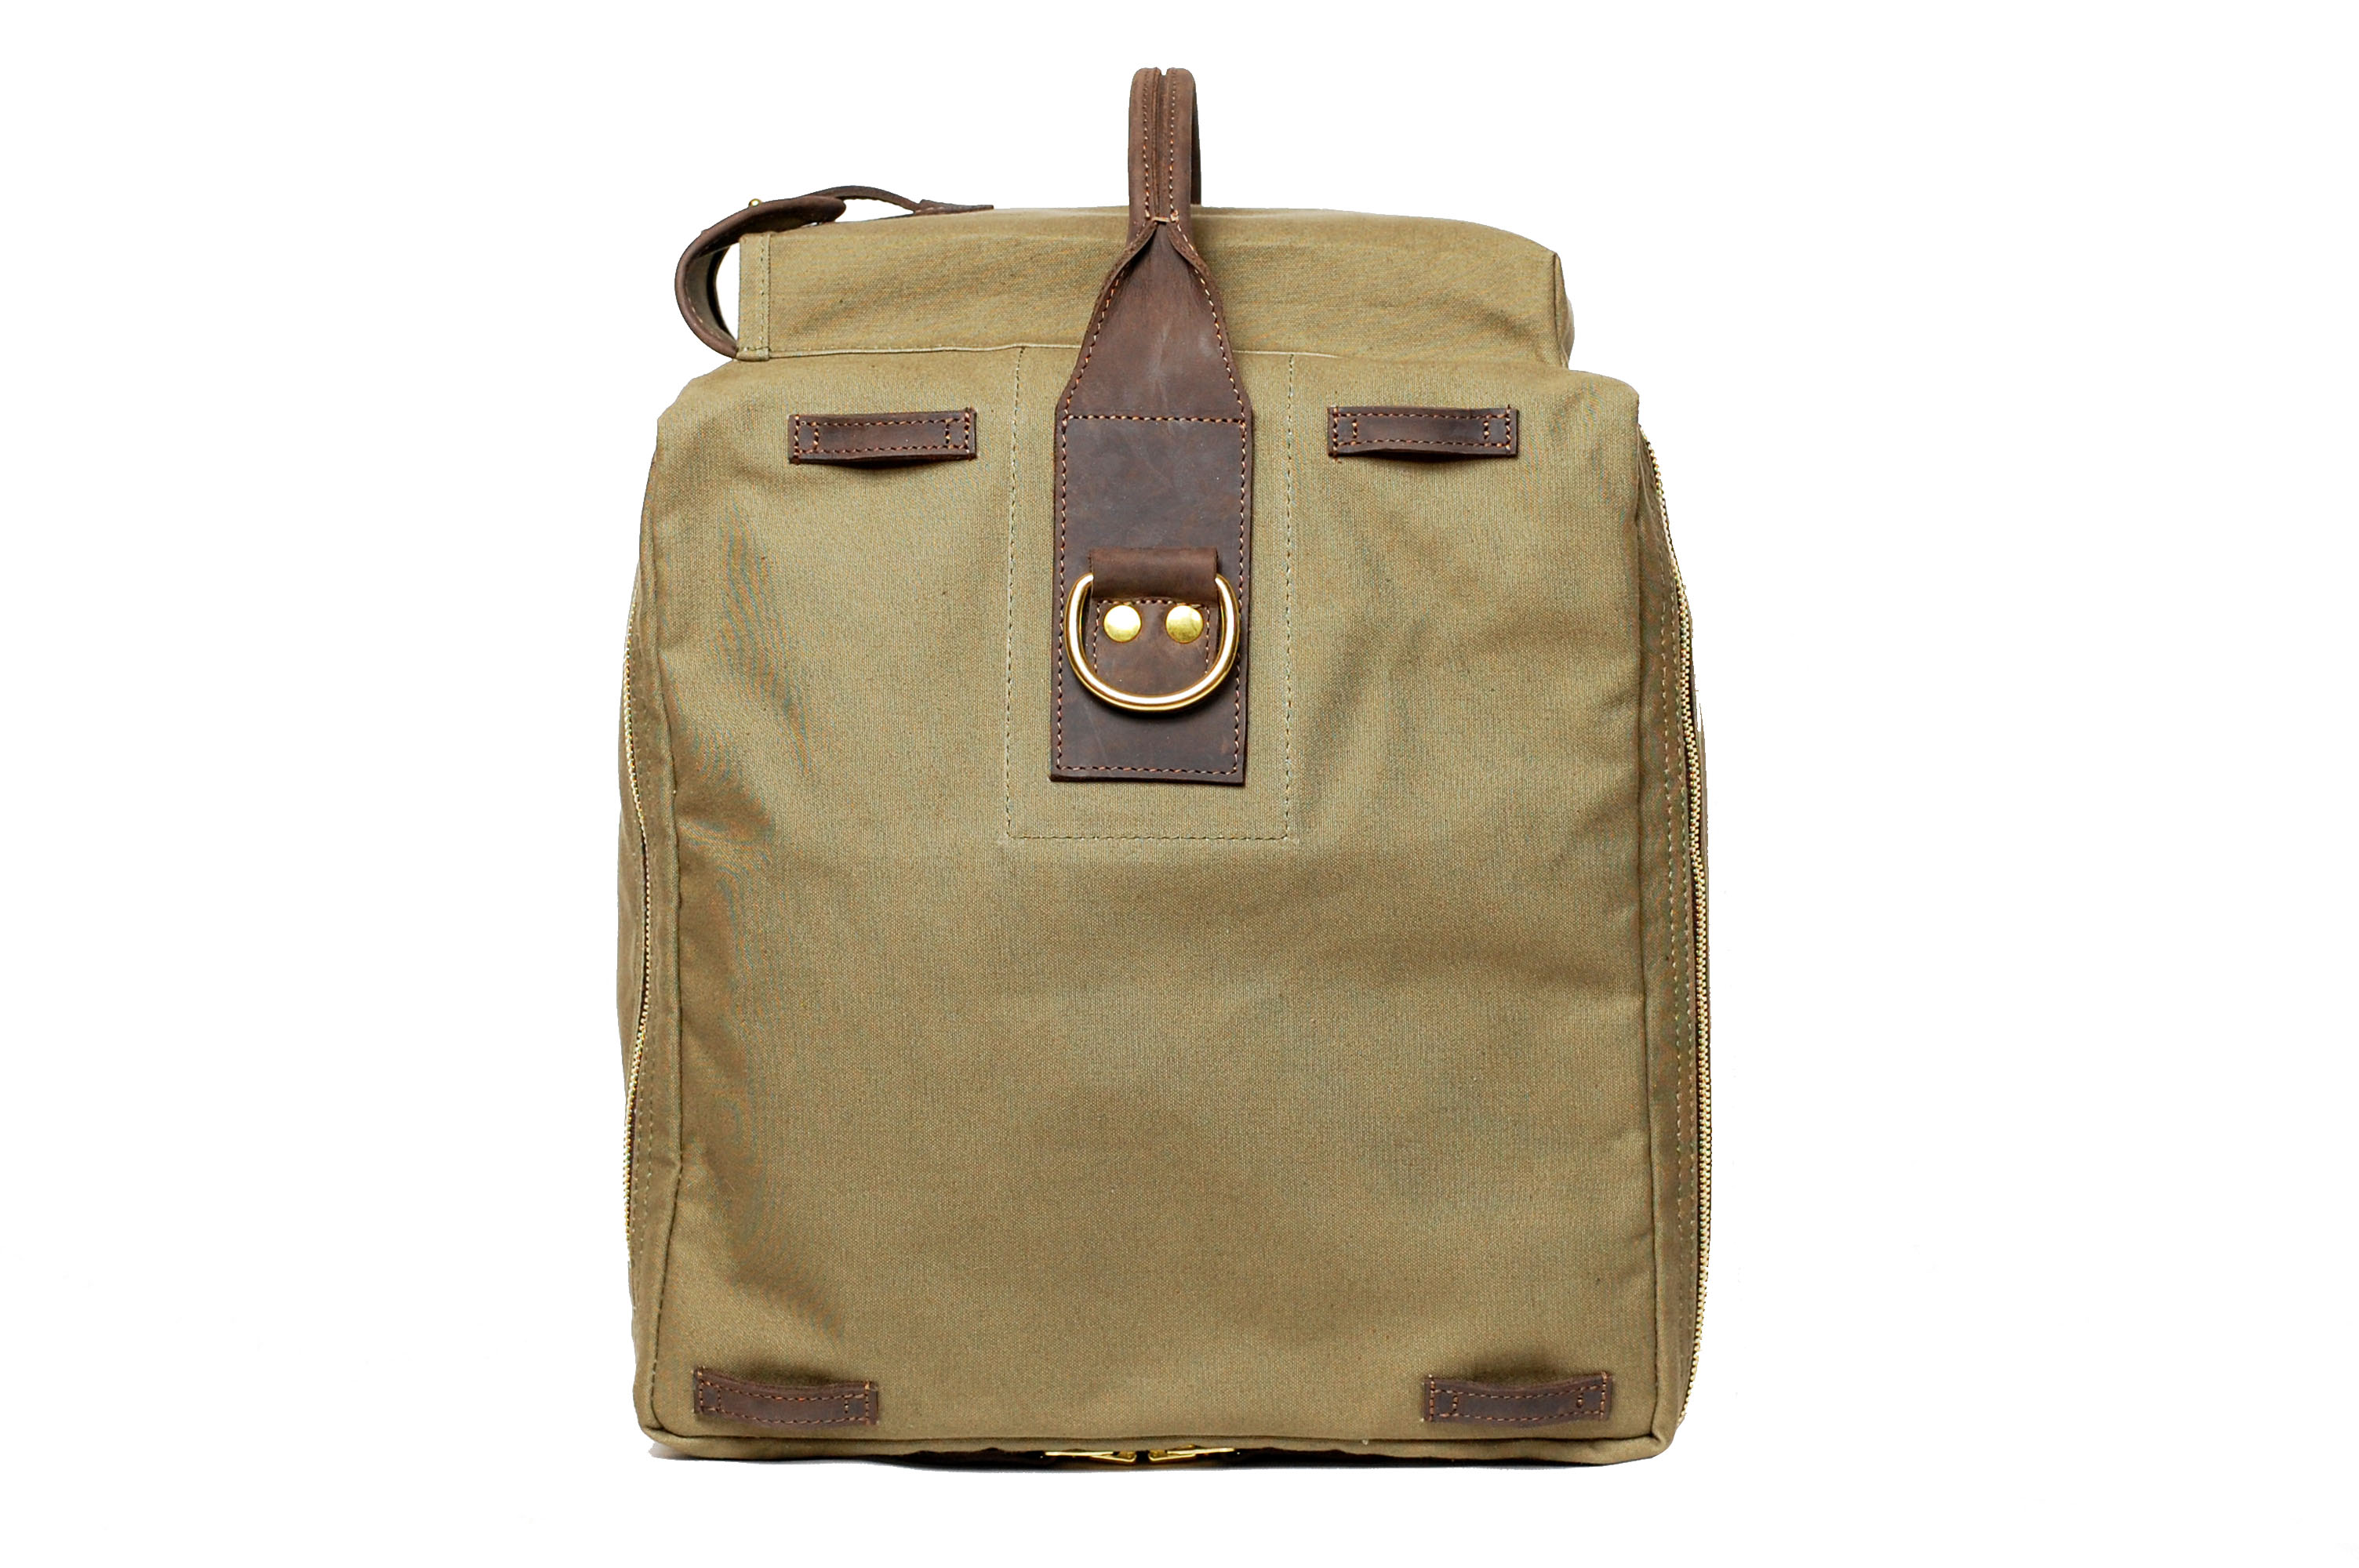 www.contractor48.com, www.mahiout.com, Escape backpack bag transformable, military , pilot backpack